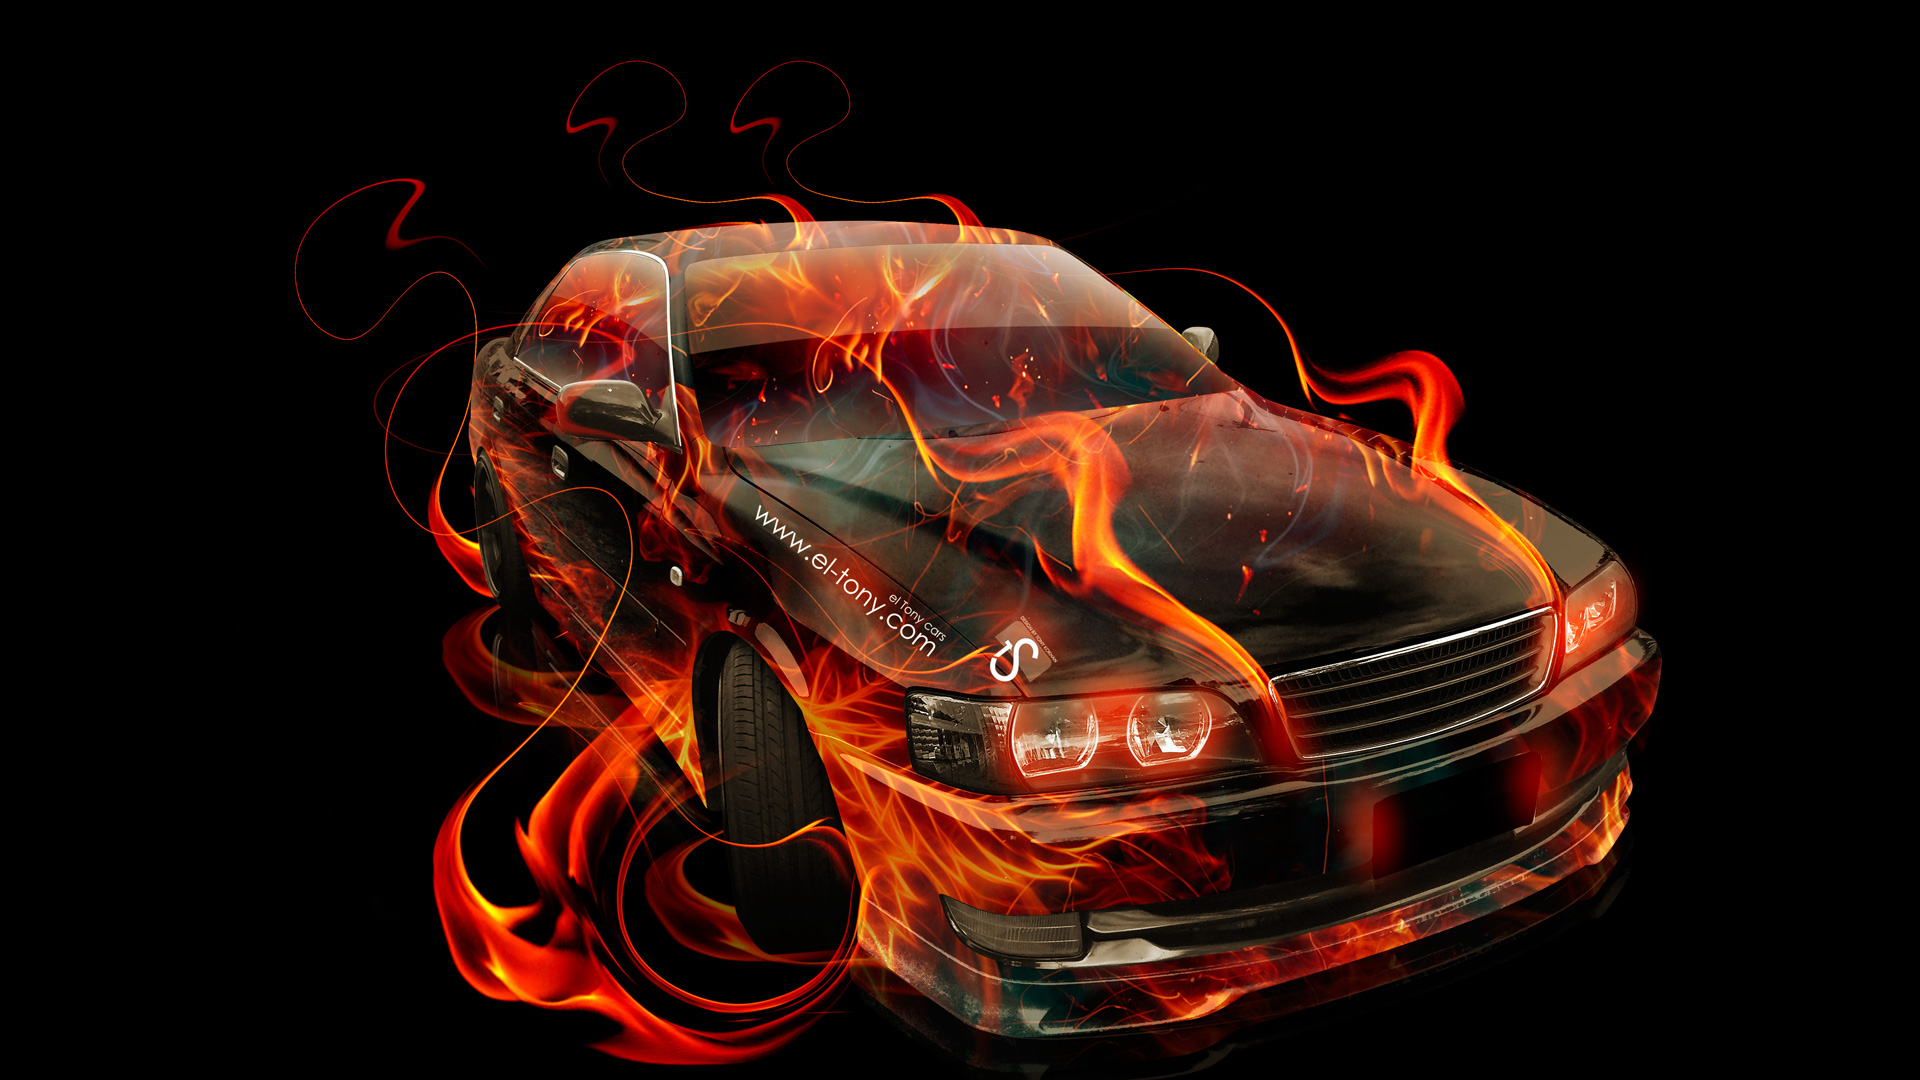 Toyota Chaser JZX100 JDM Fire Up Abstract Car